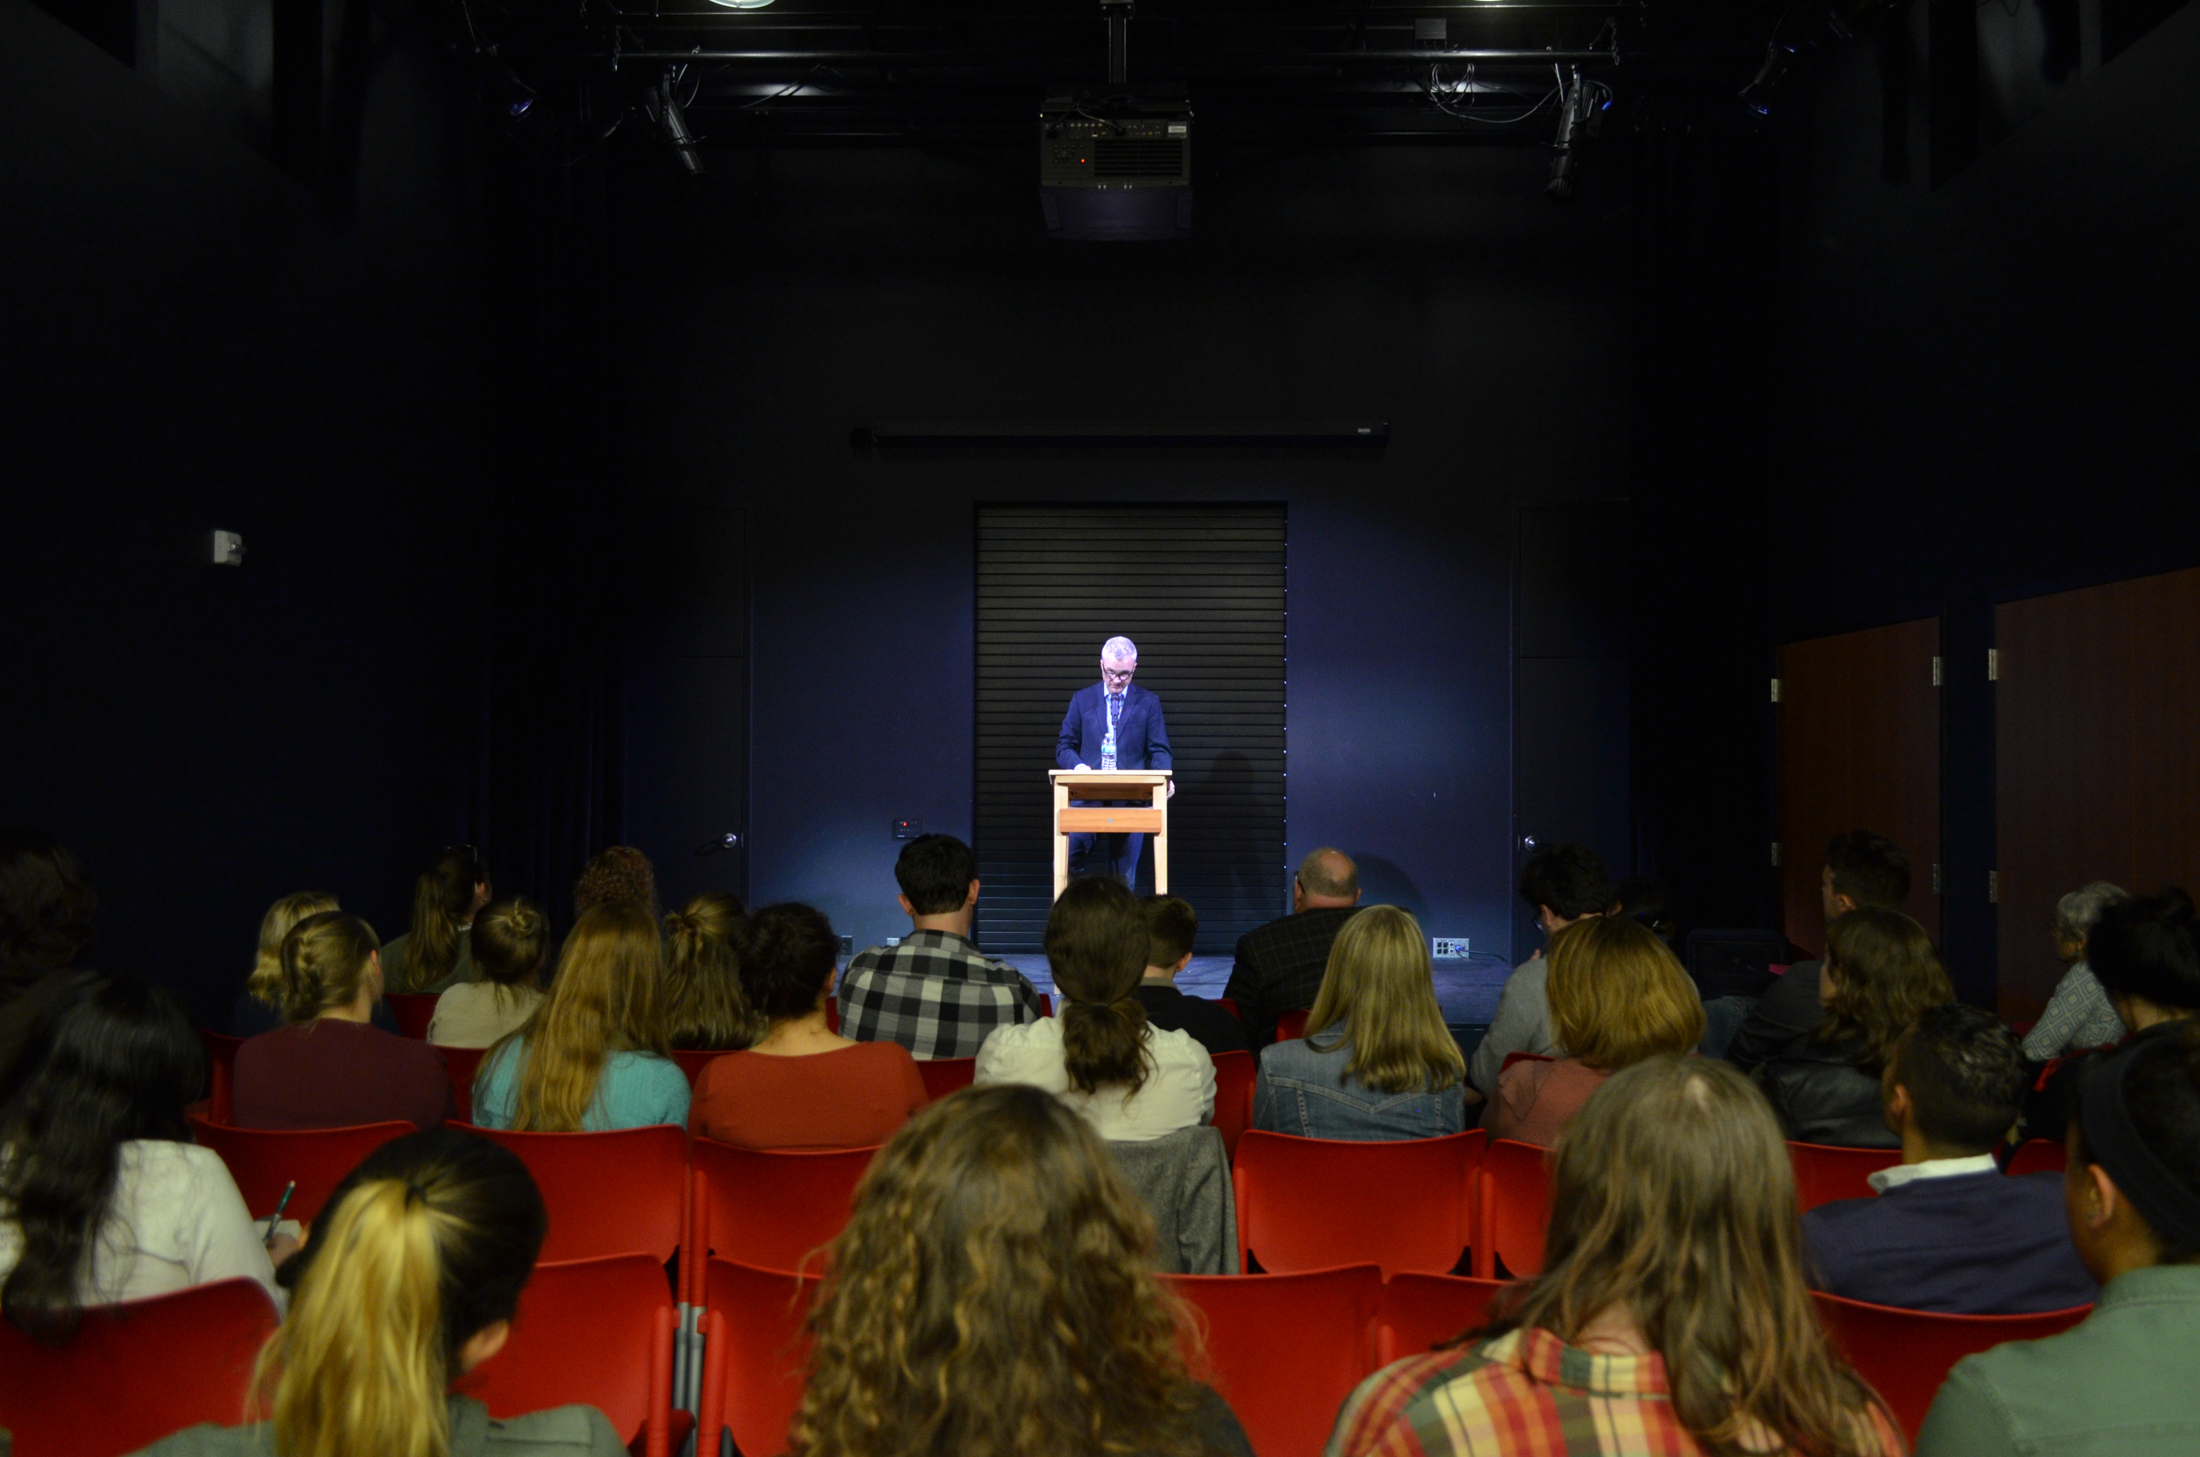 Poet and writer Joshua Mehigan reads a selection of his poems at the UConn Bookstore in Storrs Center before opening up the floor for discussion on his writing process on Thursday, Sept. 30, 2016. (Akshara Thejaswi/The Daily Campus)